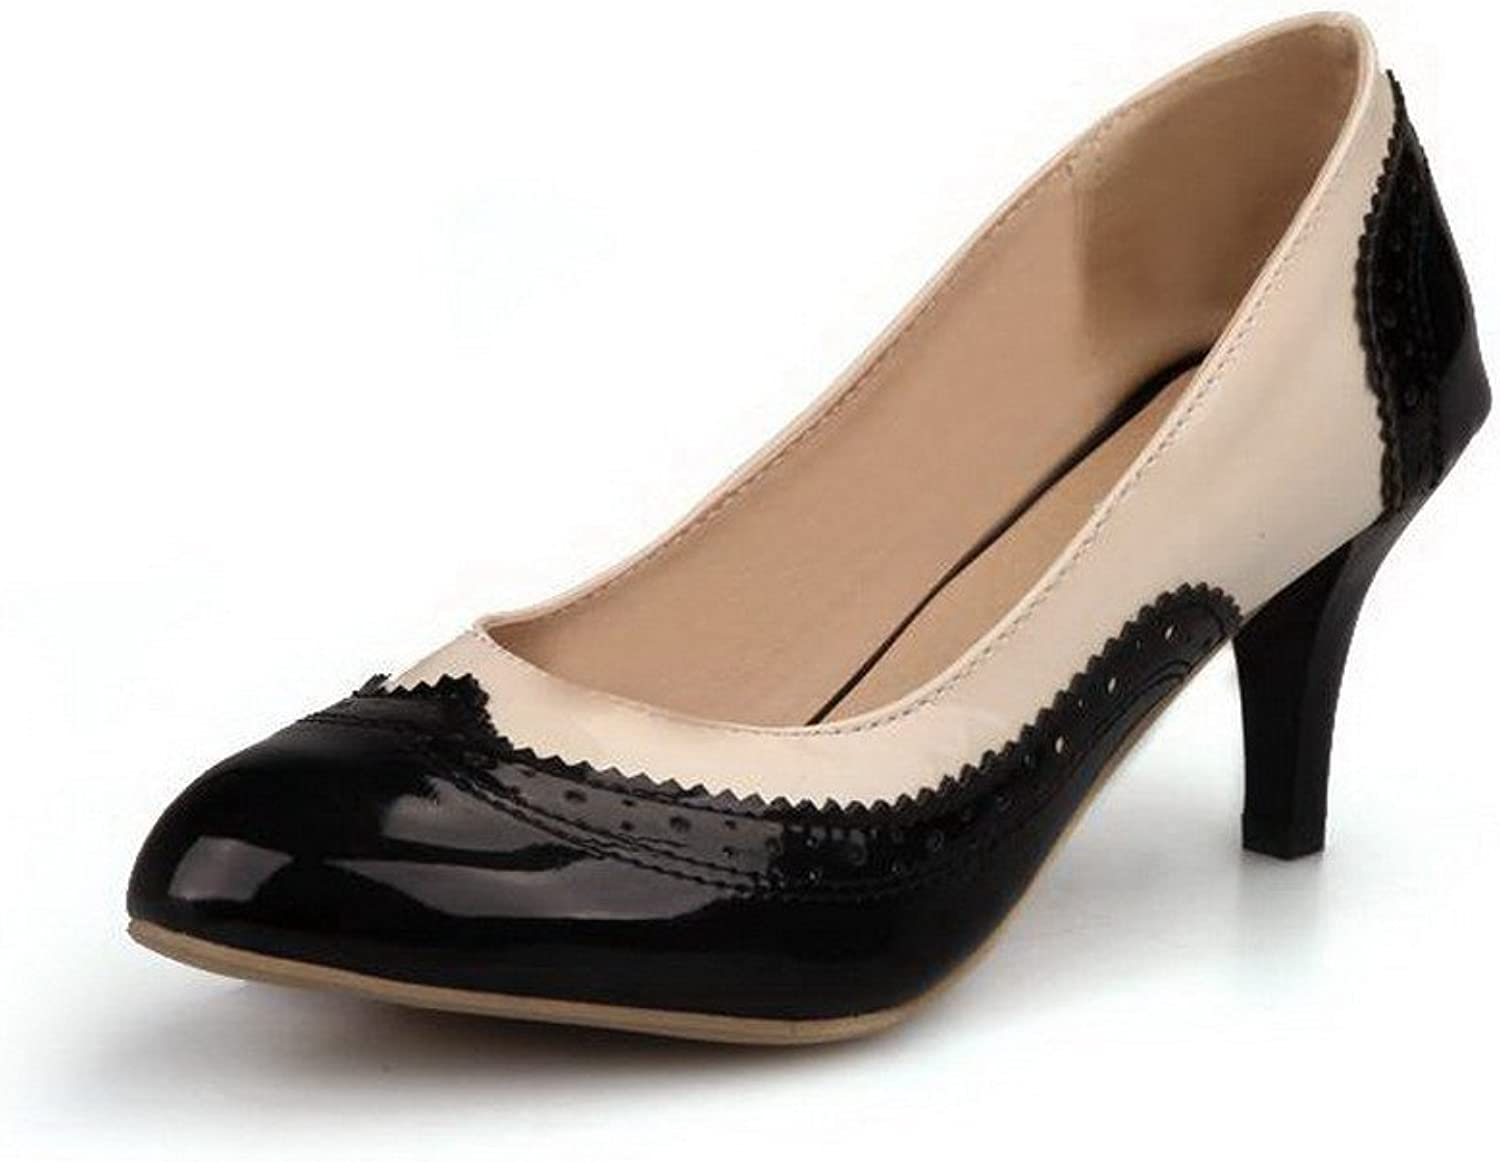 WeiPoot Women's Round Closed Toe Patent Leather Pull-On Kitten-Heels Pumps-shoes, Black, 39